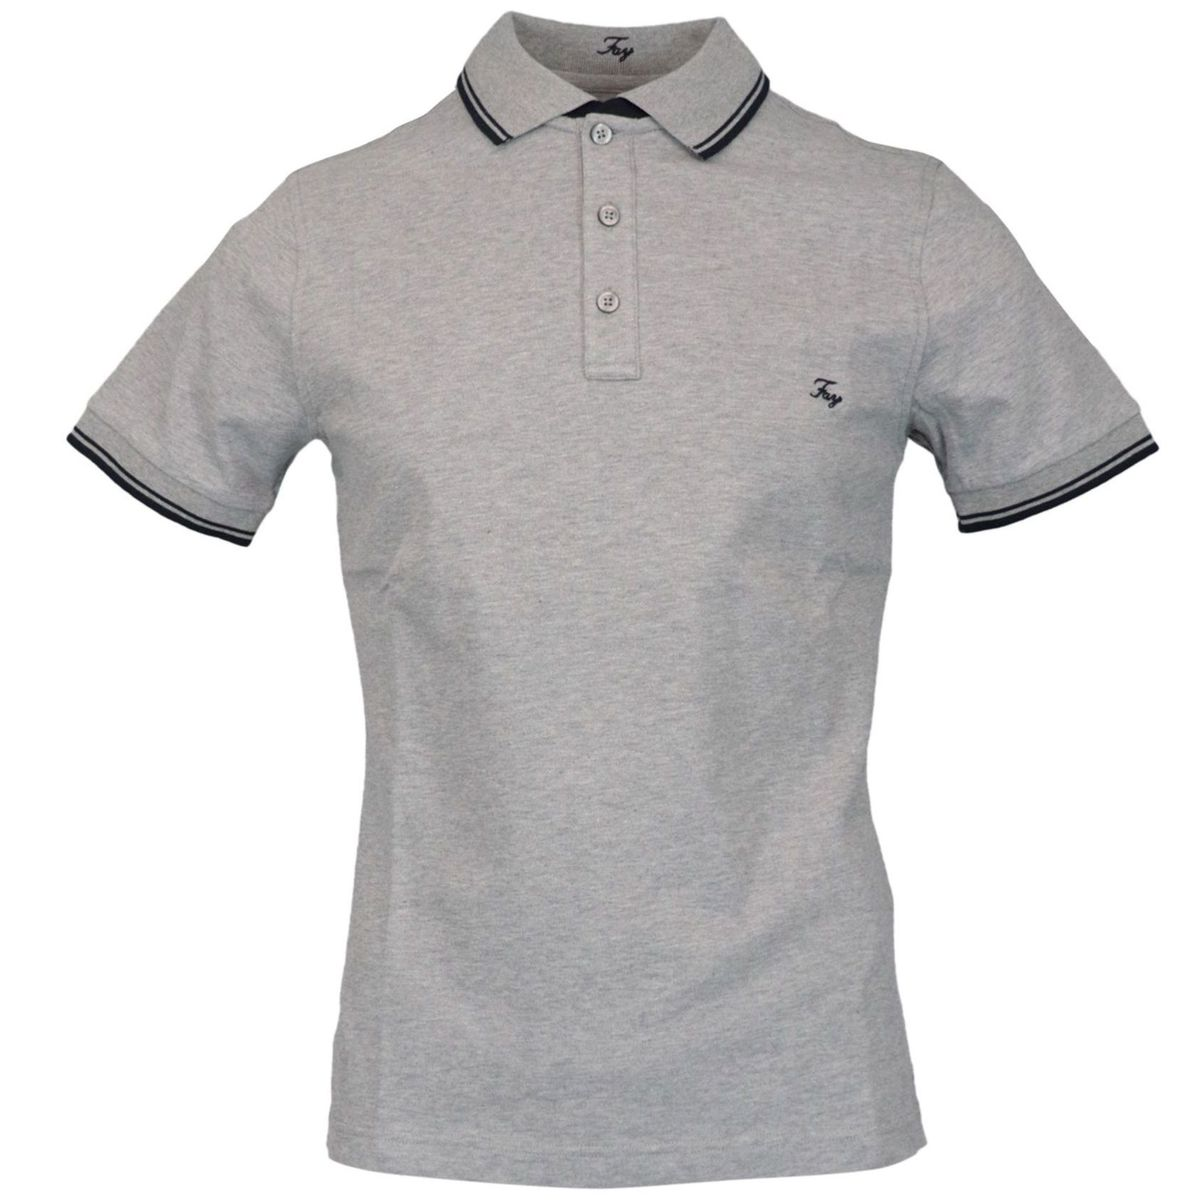 Three button stretch cotton polo shirt with logo embroidery Light grey Fay